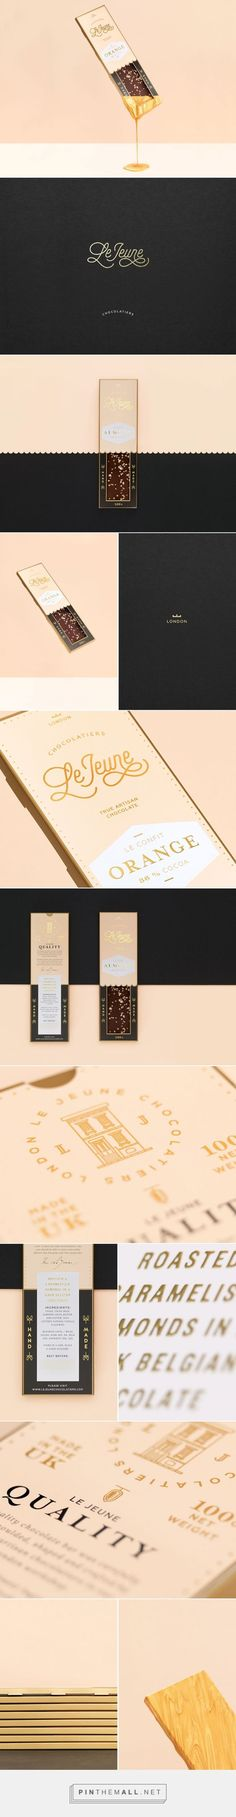 Le Jeune Quality Chocolate Packaging by Studio Chapeaux | Fivestar Branding Agency – Design and Branding Agency & Curated Inspiration Gallery